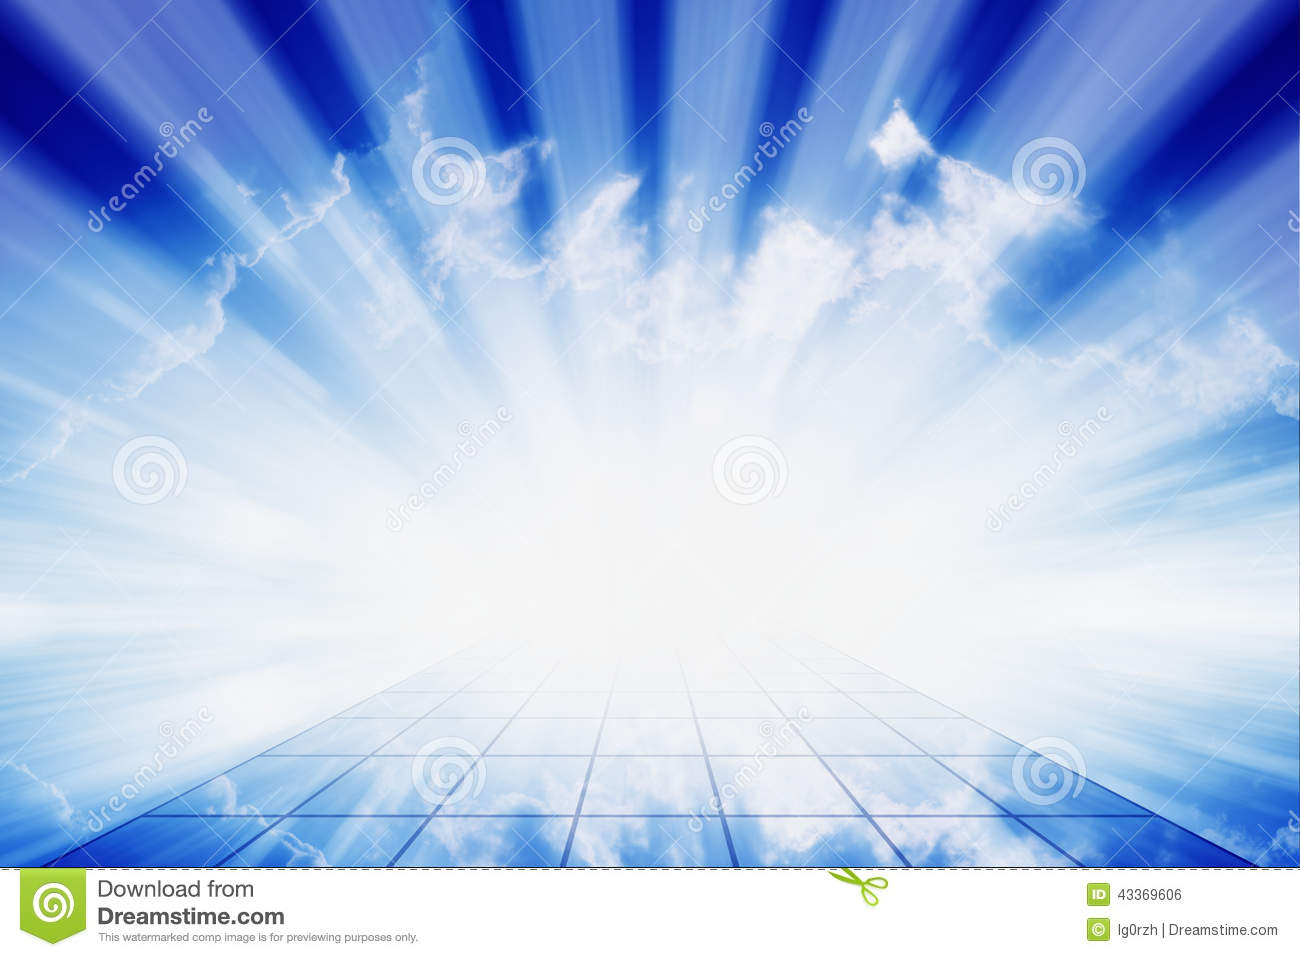 Abstract peaceful background beautiful blue sky bright beams way